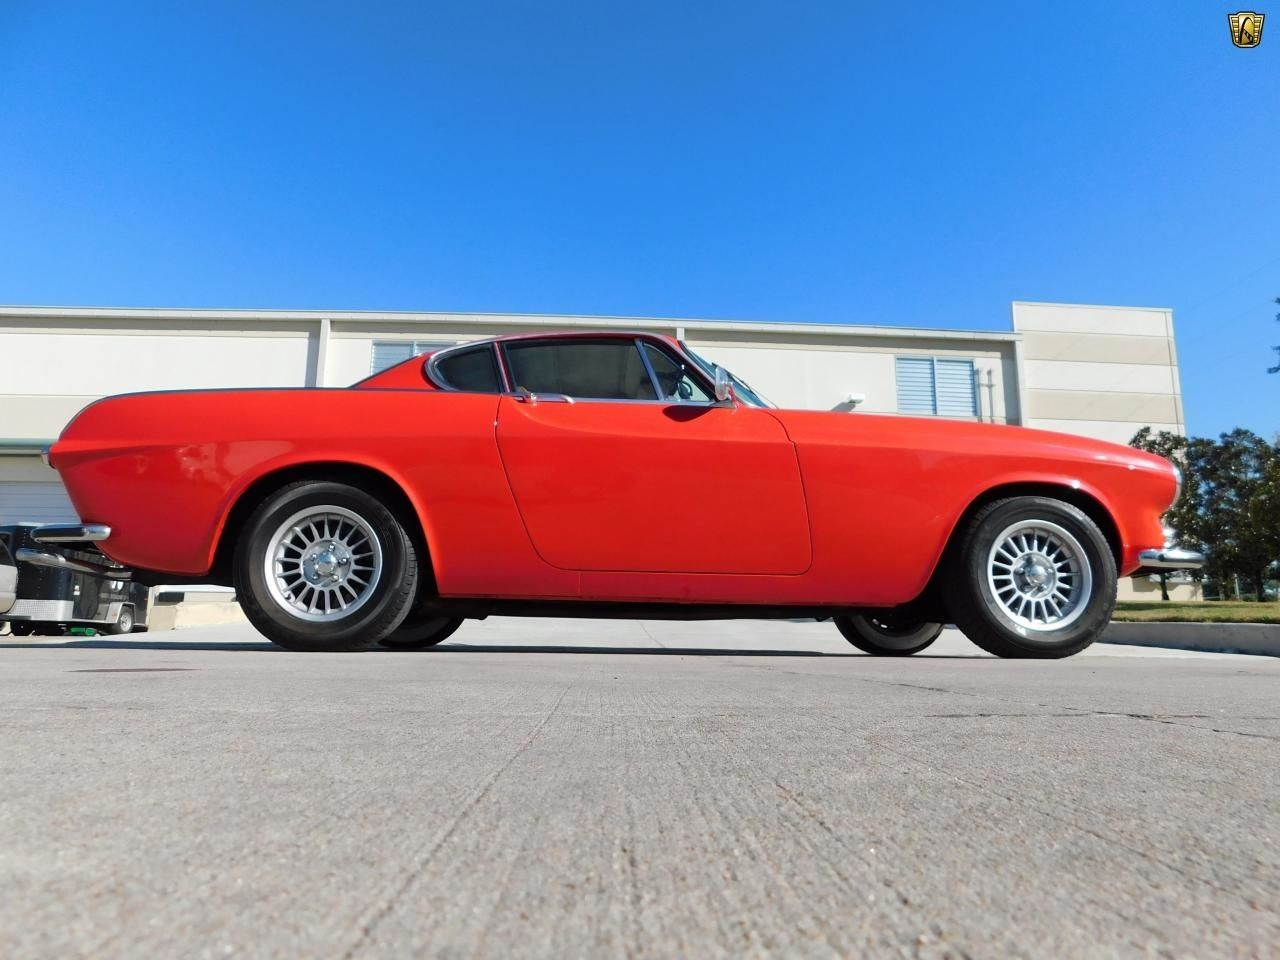 Red Classic 1971 Volvo P1800E I4 For Sale by Dealer in Houston, Texas